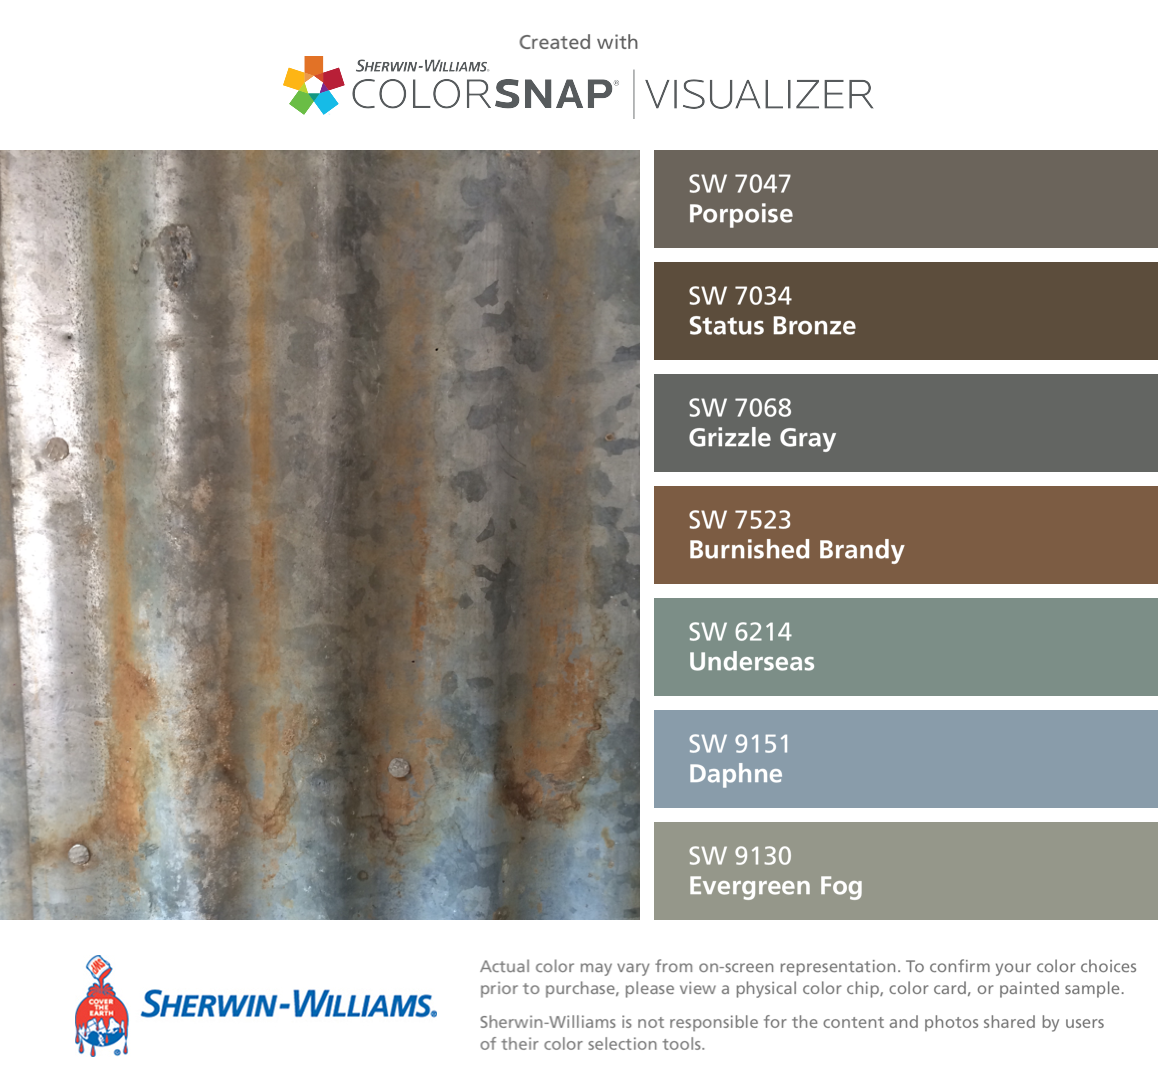 I found these colors with ColorSnap® Visualizer for iPhone by Sherwin-Williams: Porpoise (SW 7047), Status Bronze (SW 7034), Grizzle Gray (SW 7068), Burnished Brandy (SW 7523), Underseas (SW 6214), Daphne (SW 9151), Evergreen Fog (SW 9130). #cityloftsherwinwilliams